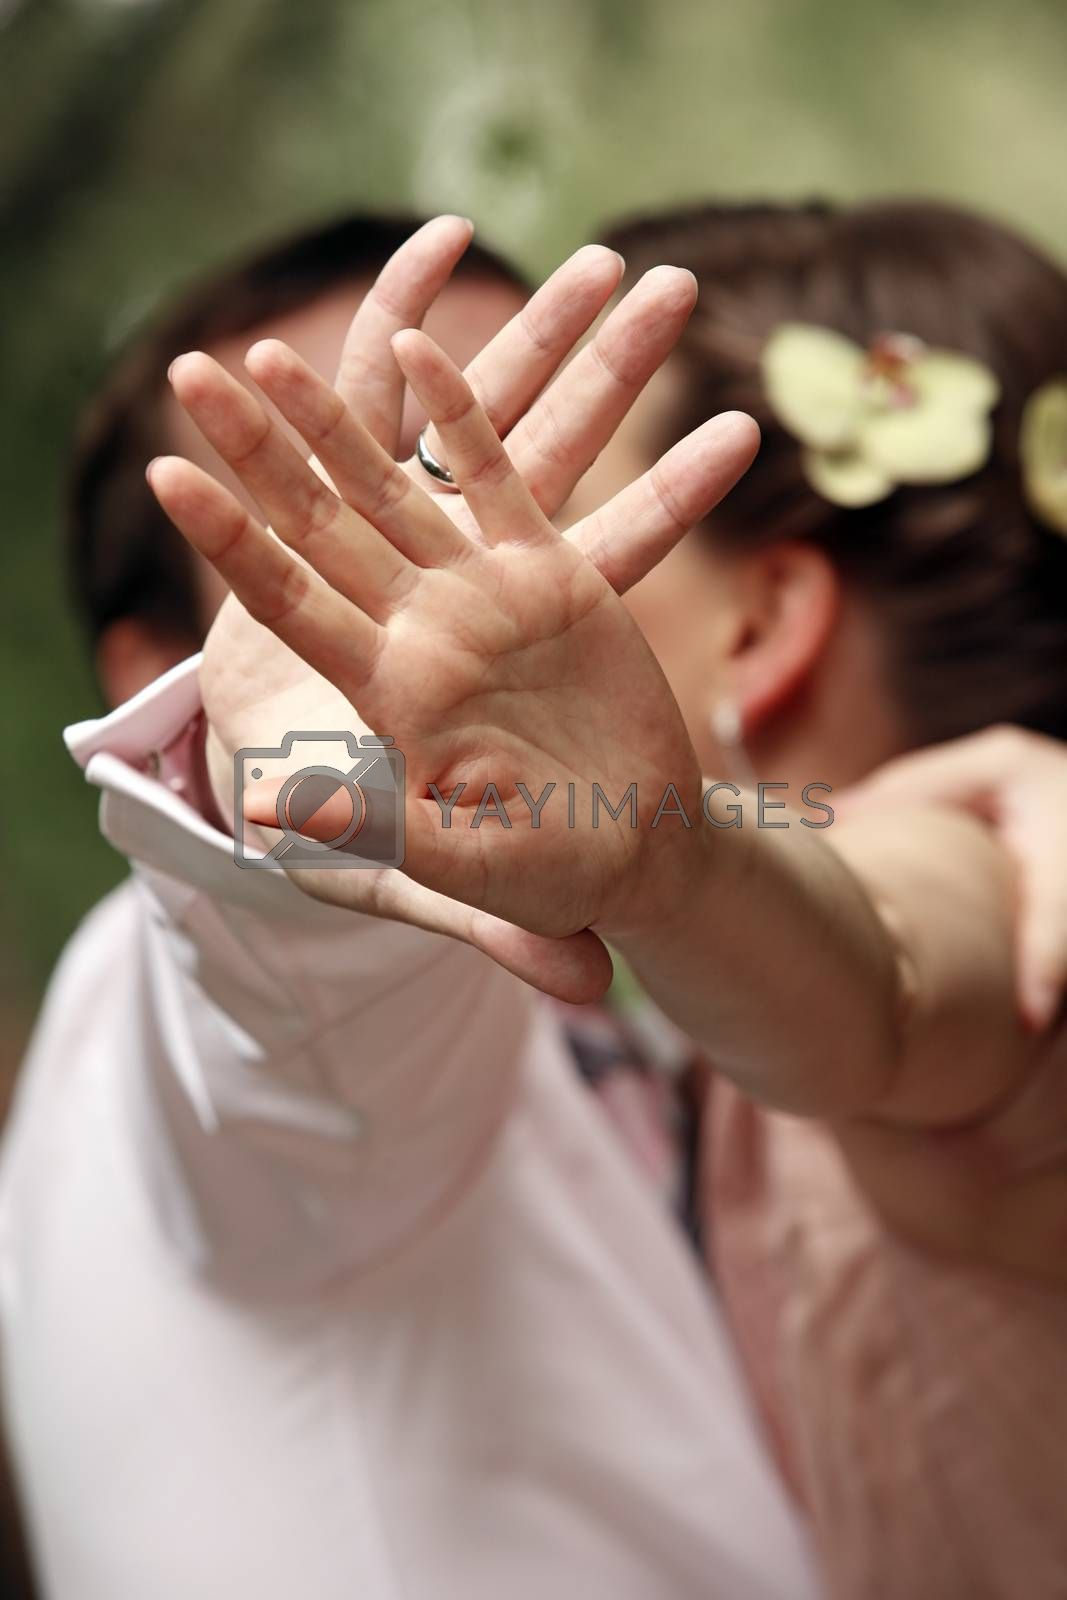 The groom is closed from the photographer by a hand